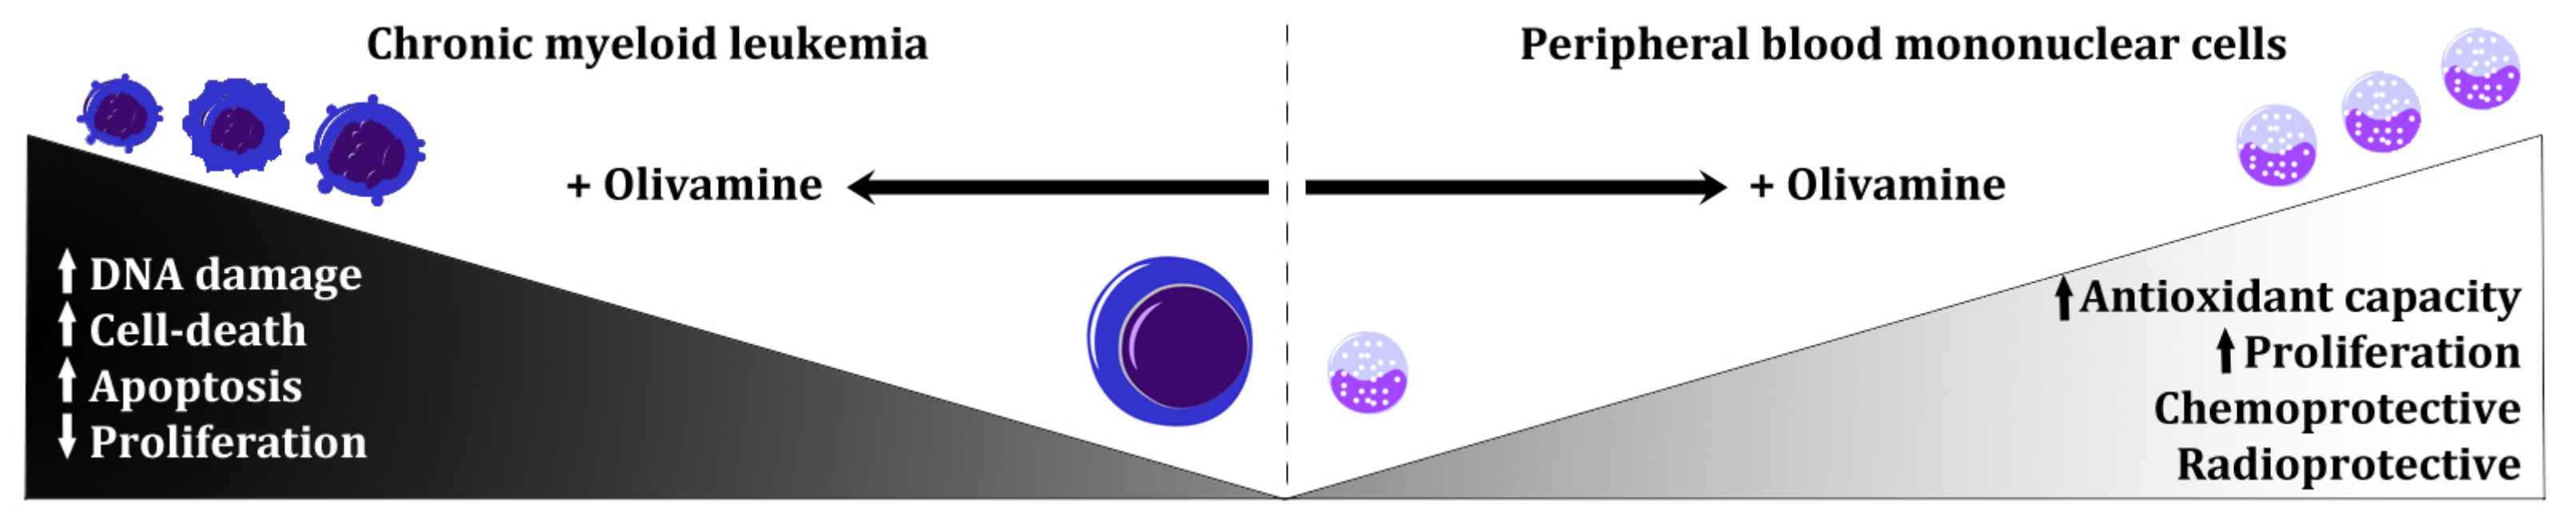 Effects of olivamine on normal and cancer cells.jpg